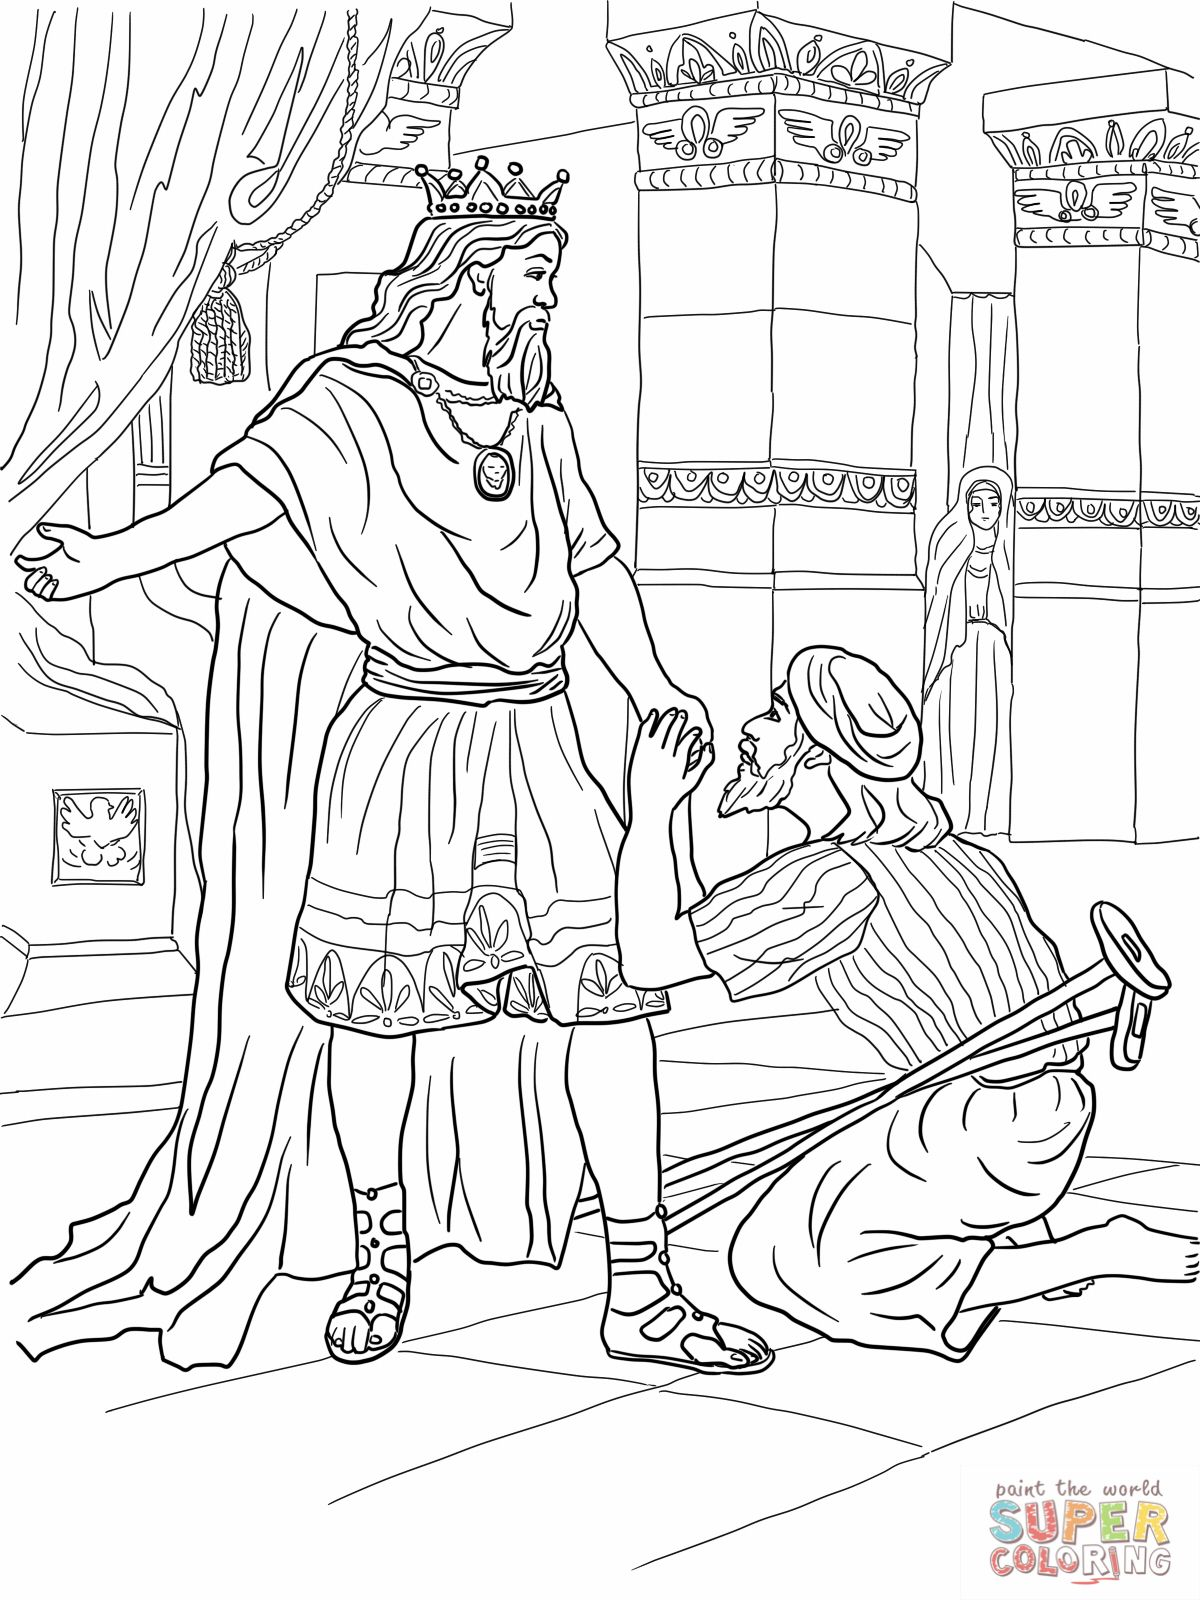 mephibosheth coloring pages David